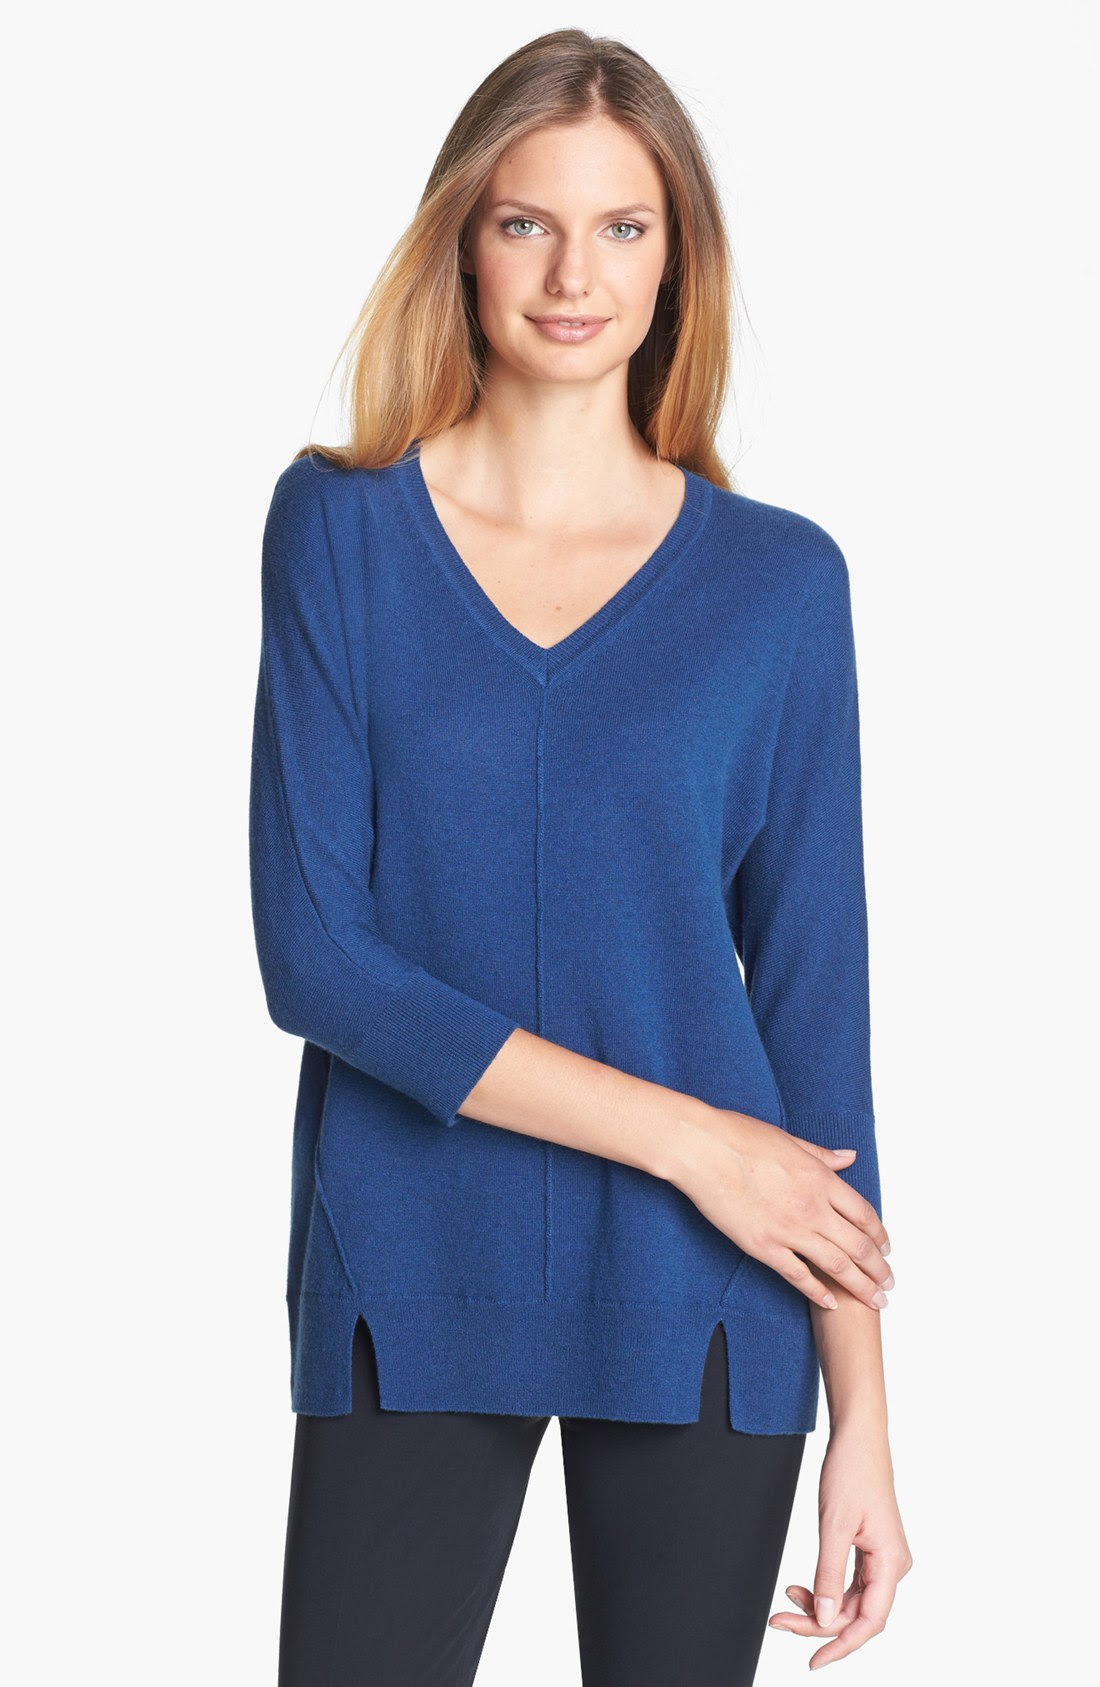 Natural fabrics womens sale nordstrom sweaters cheap